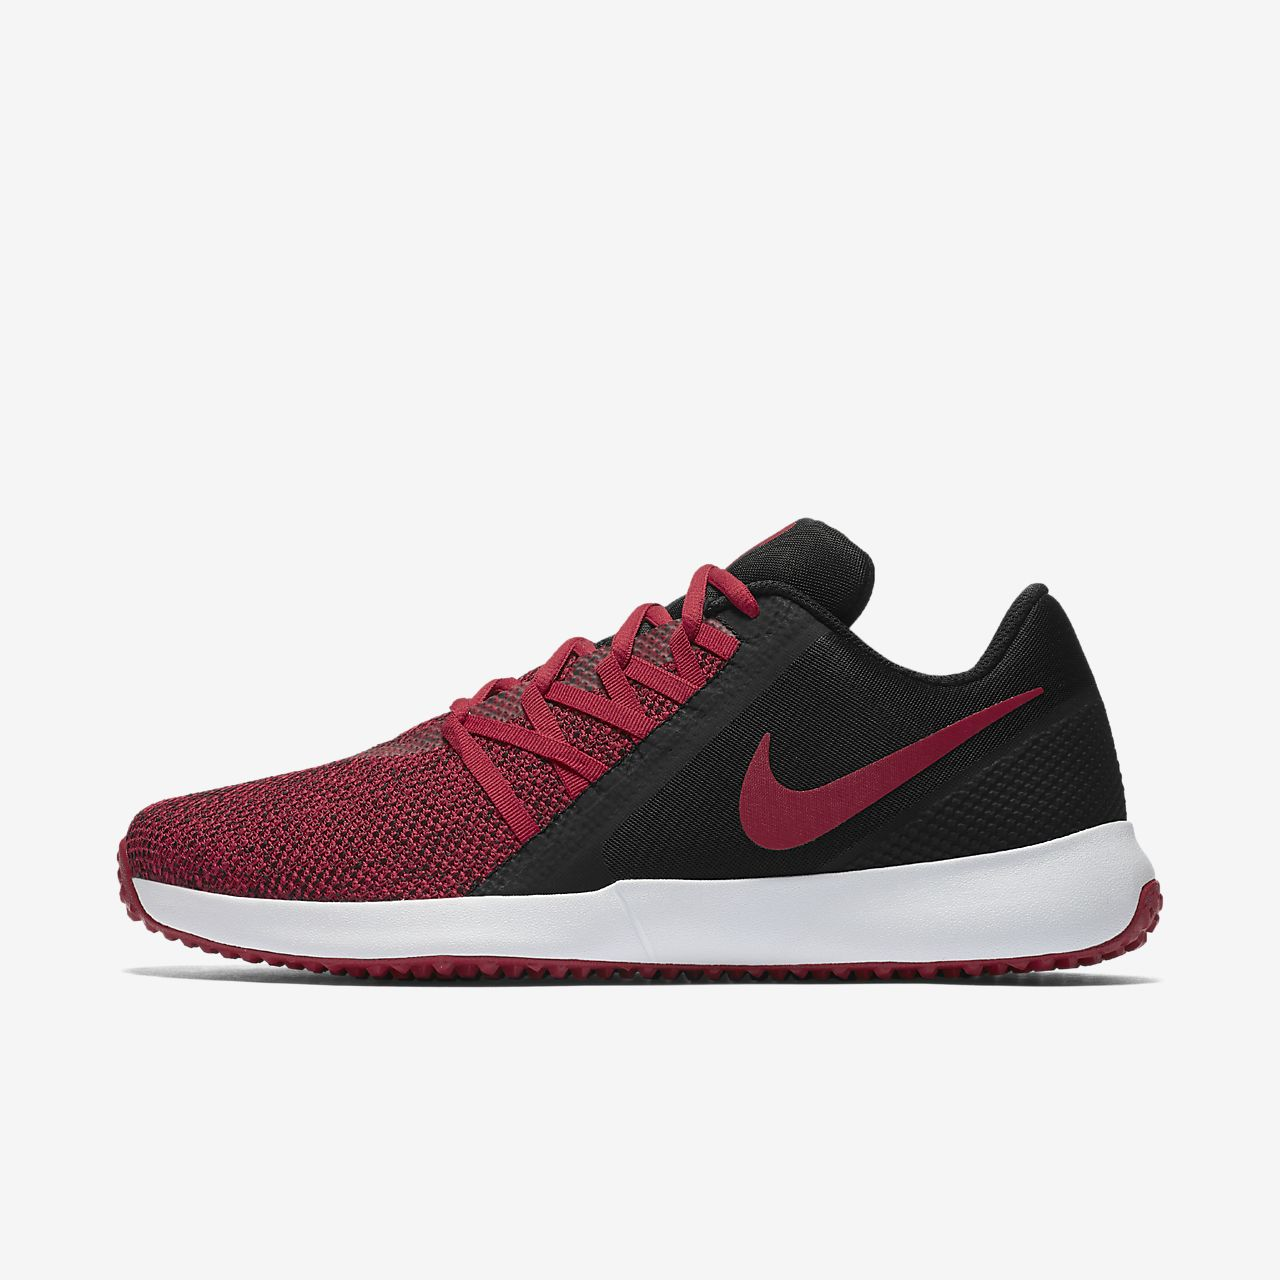 410c7c4c814 ... reduced nike varsity complete trainer mens gym sport training shoe  4e9c0 9bb64 ...